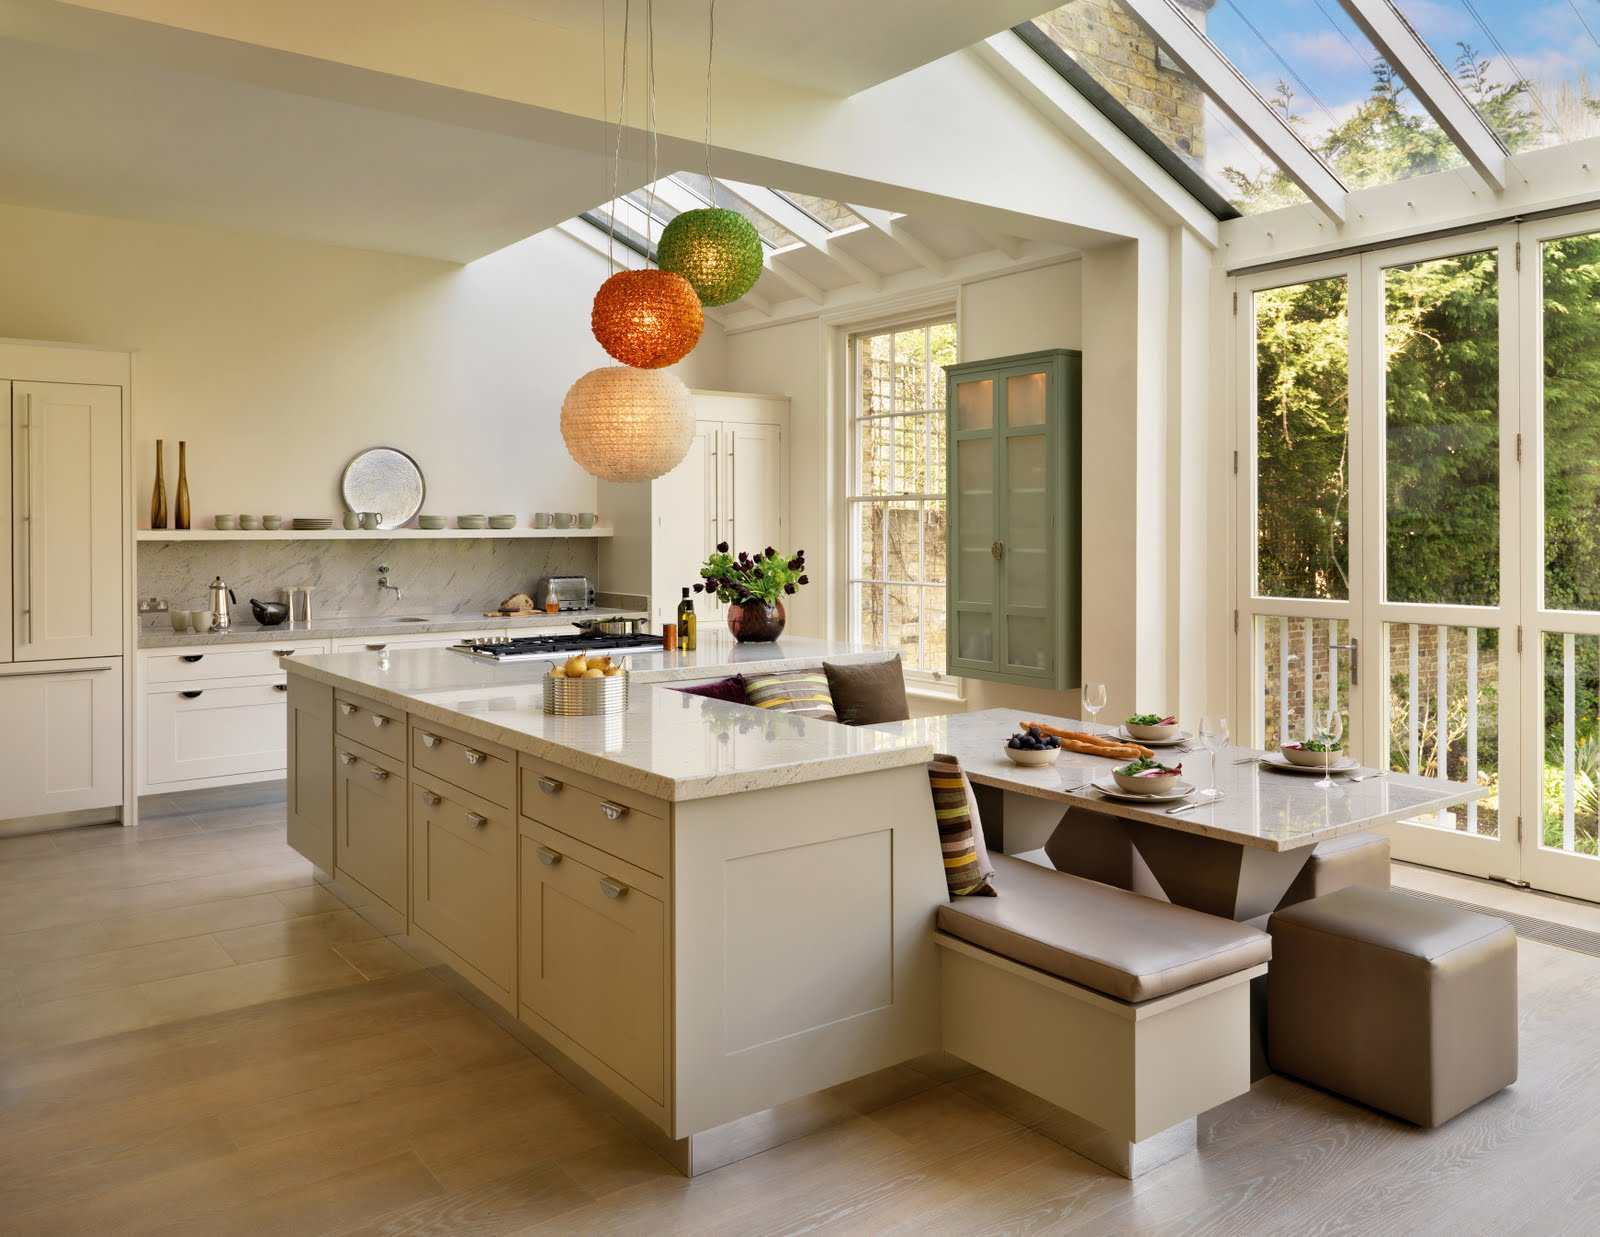 How To Make Kitchen Islands For Yourself And For Sale Modern Kitchen Furniture Photos Ideas Reviews